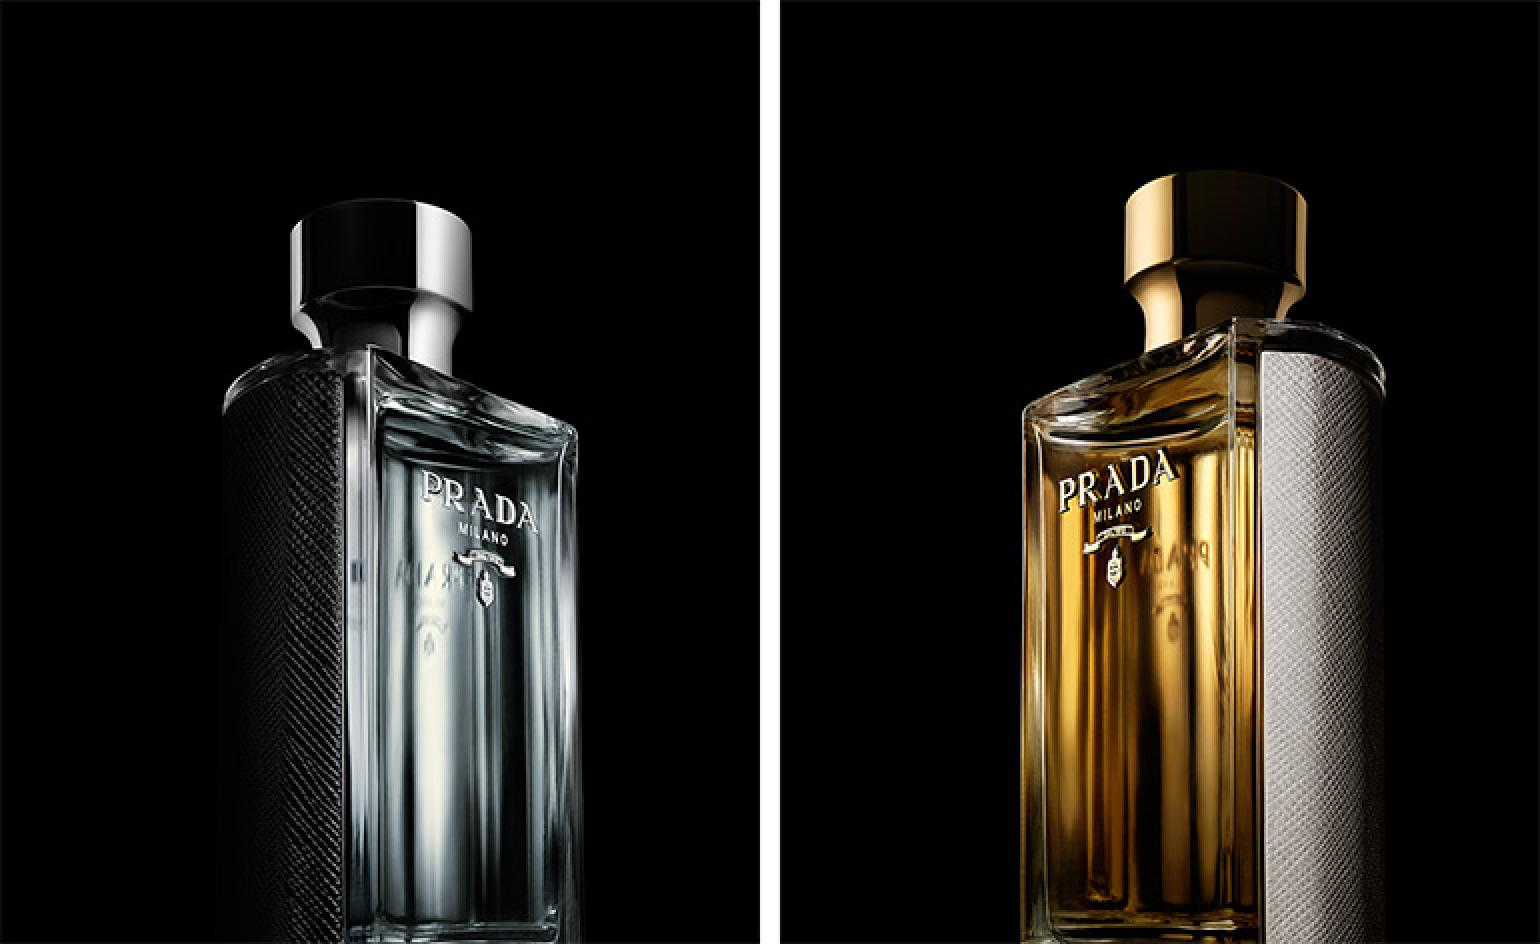 Prada releases complementary his and hers fragrances | Wallpaper*